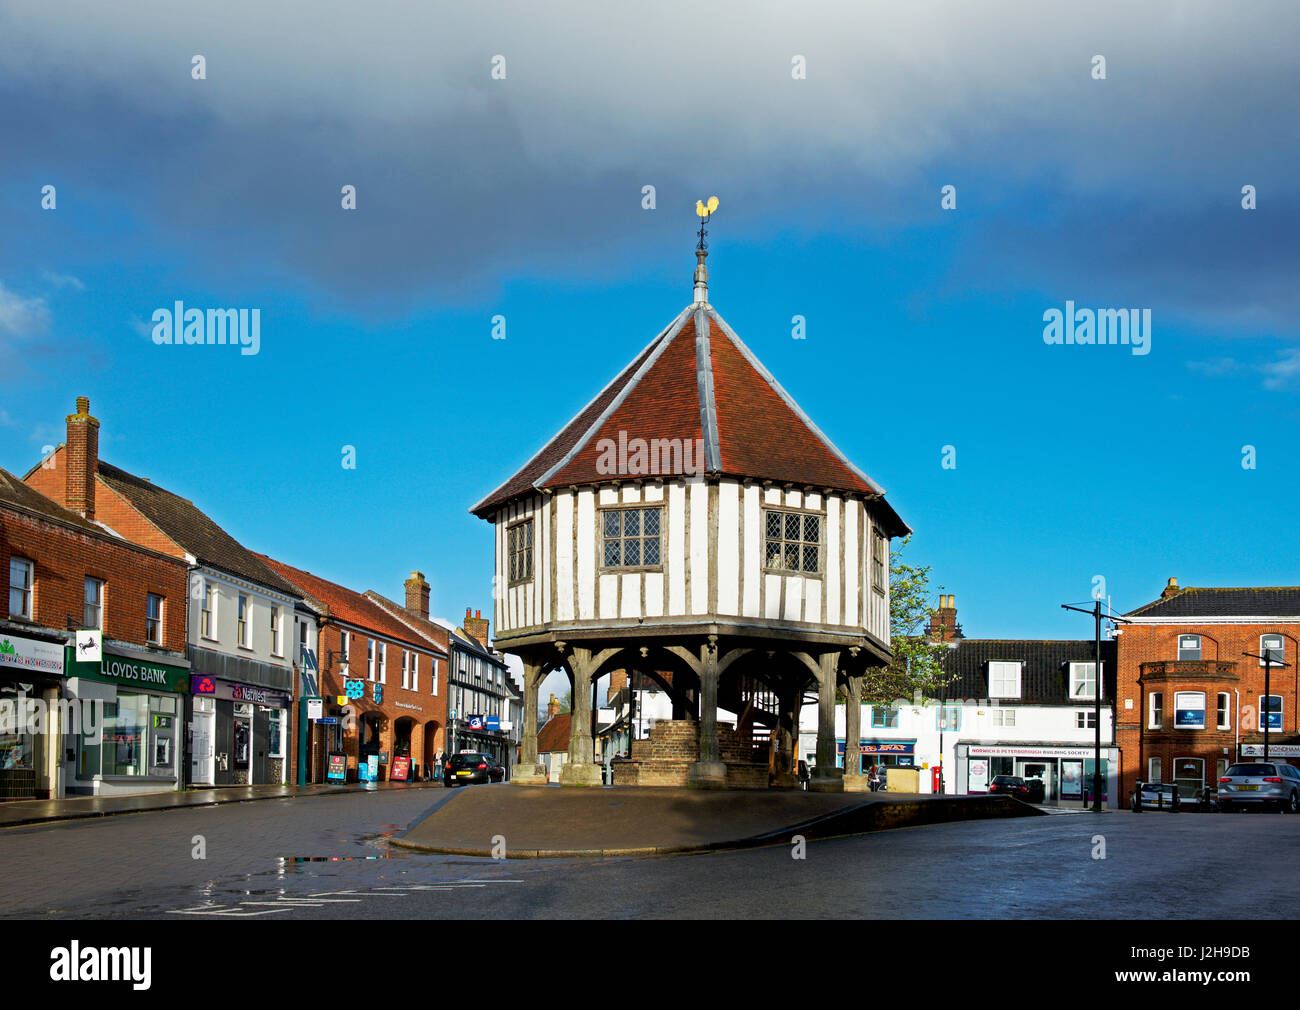 the-17th-century-market-cross-wymondham-norfolk-england-uk-J2H9DB.jpg